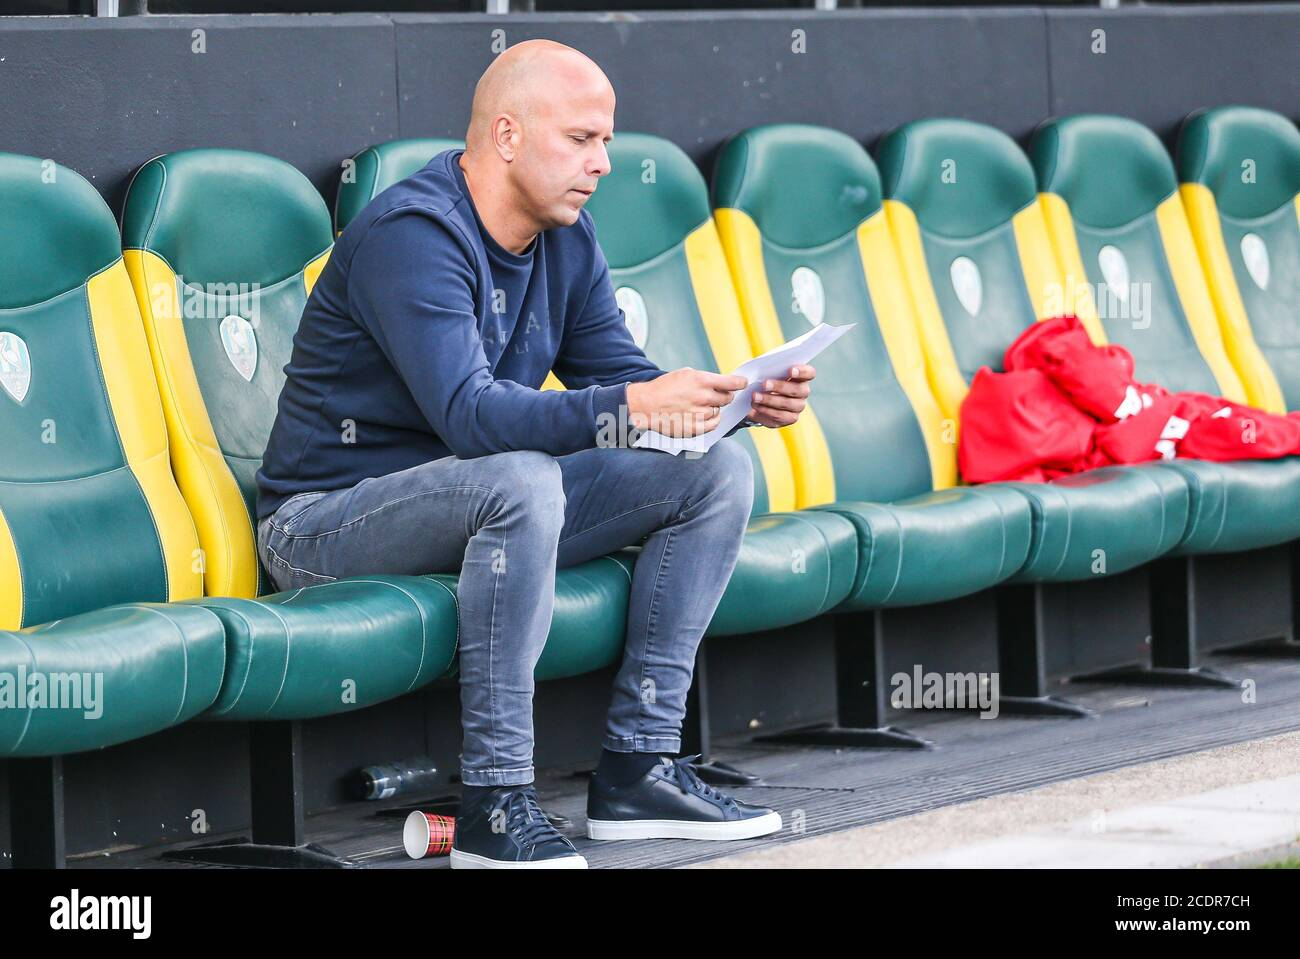 Rotterdam 29 8 20 Cars Jeans Stadion Pre Season 20 21 Ado Den Haag Az Az Trainer Arne Slot Credit Pro Shots Alamy Live News Stock Photo Alamy